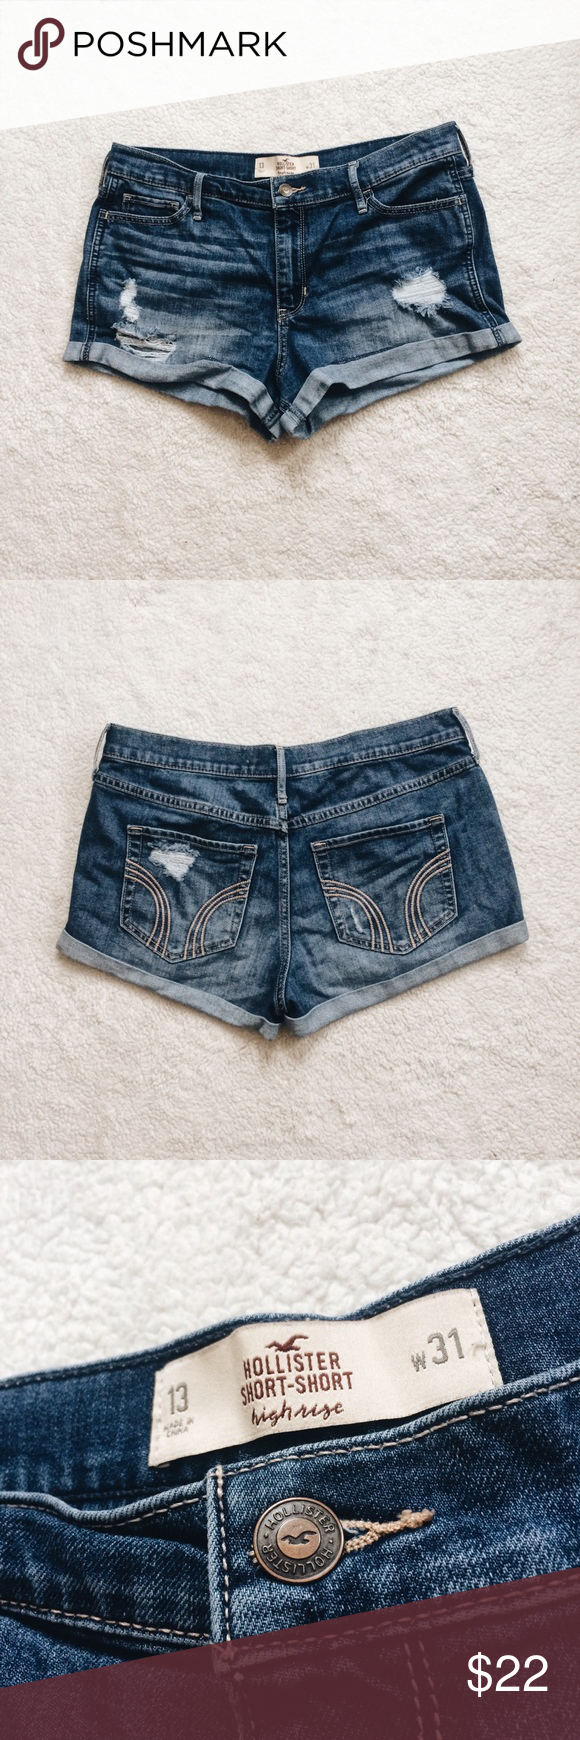 Distressed High-Rise Short Shorts -Good Condition- Hollister